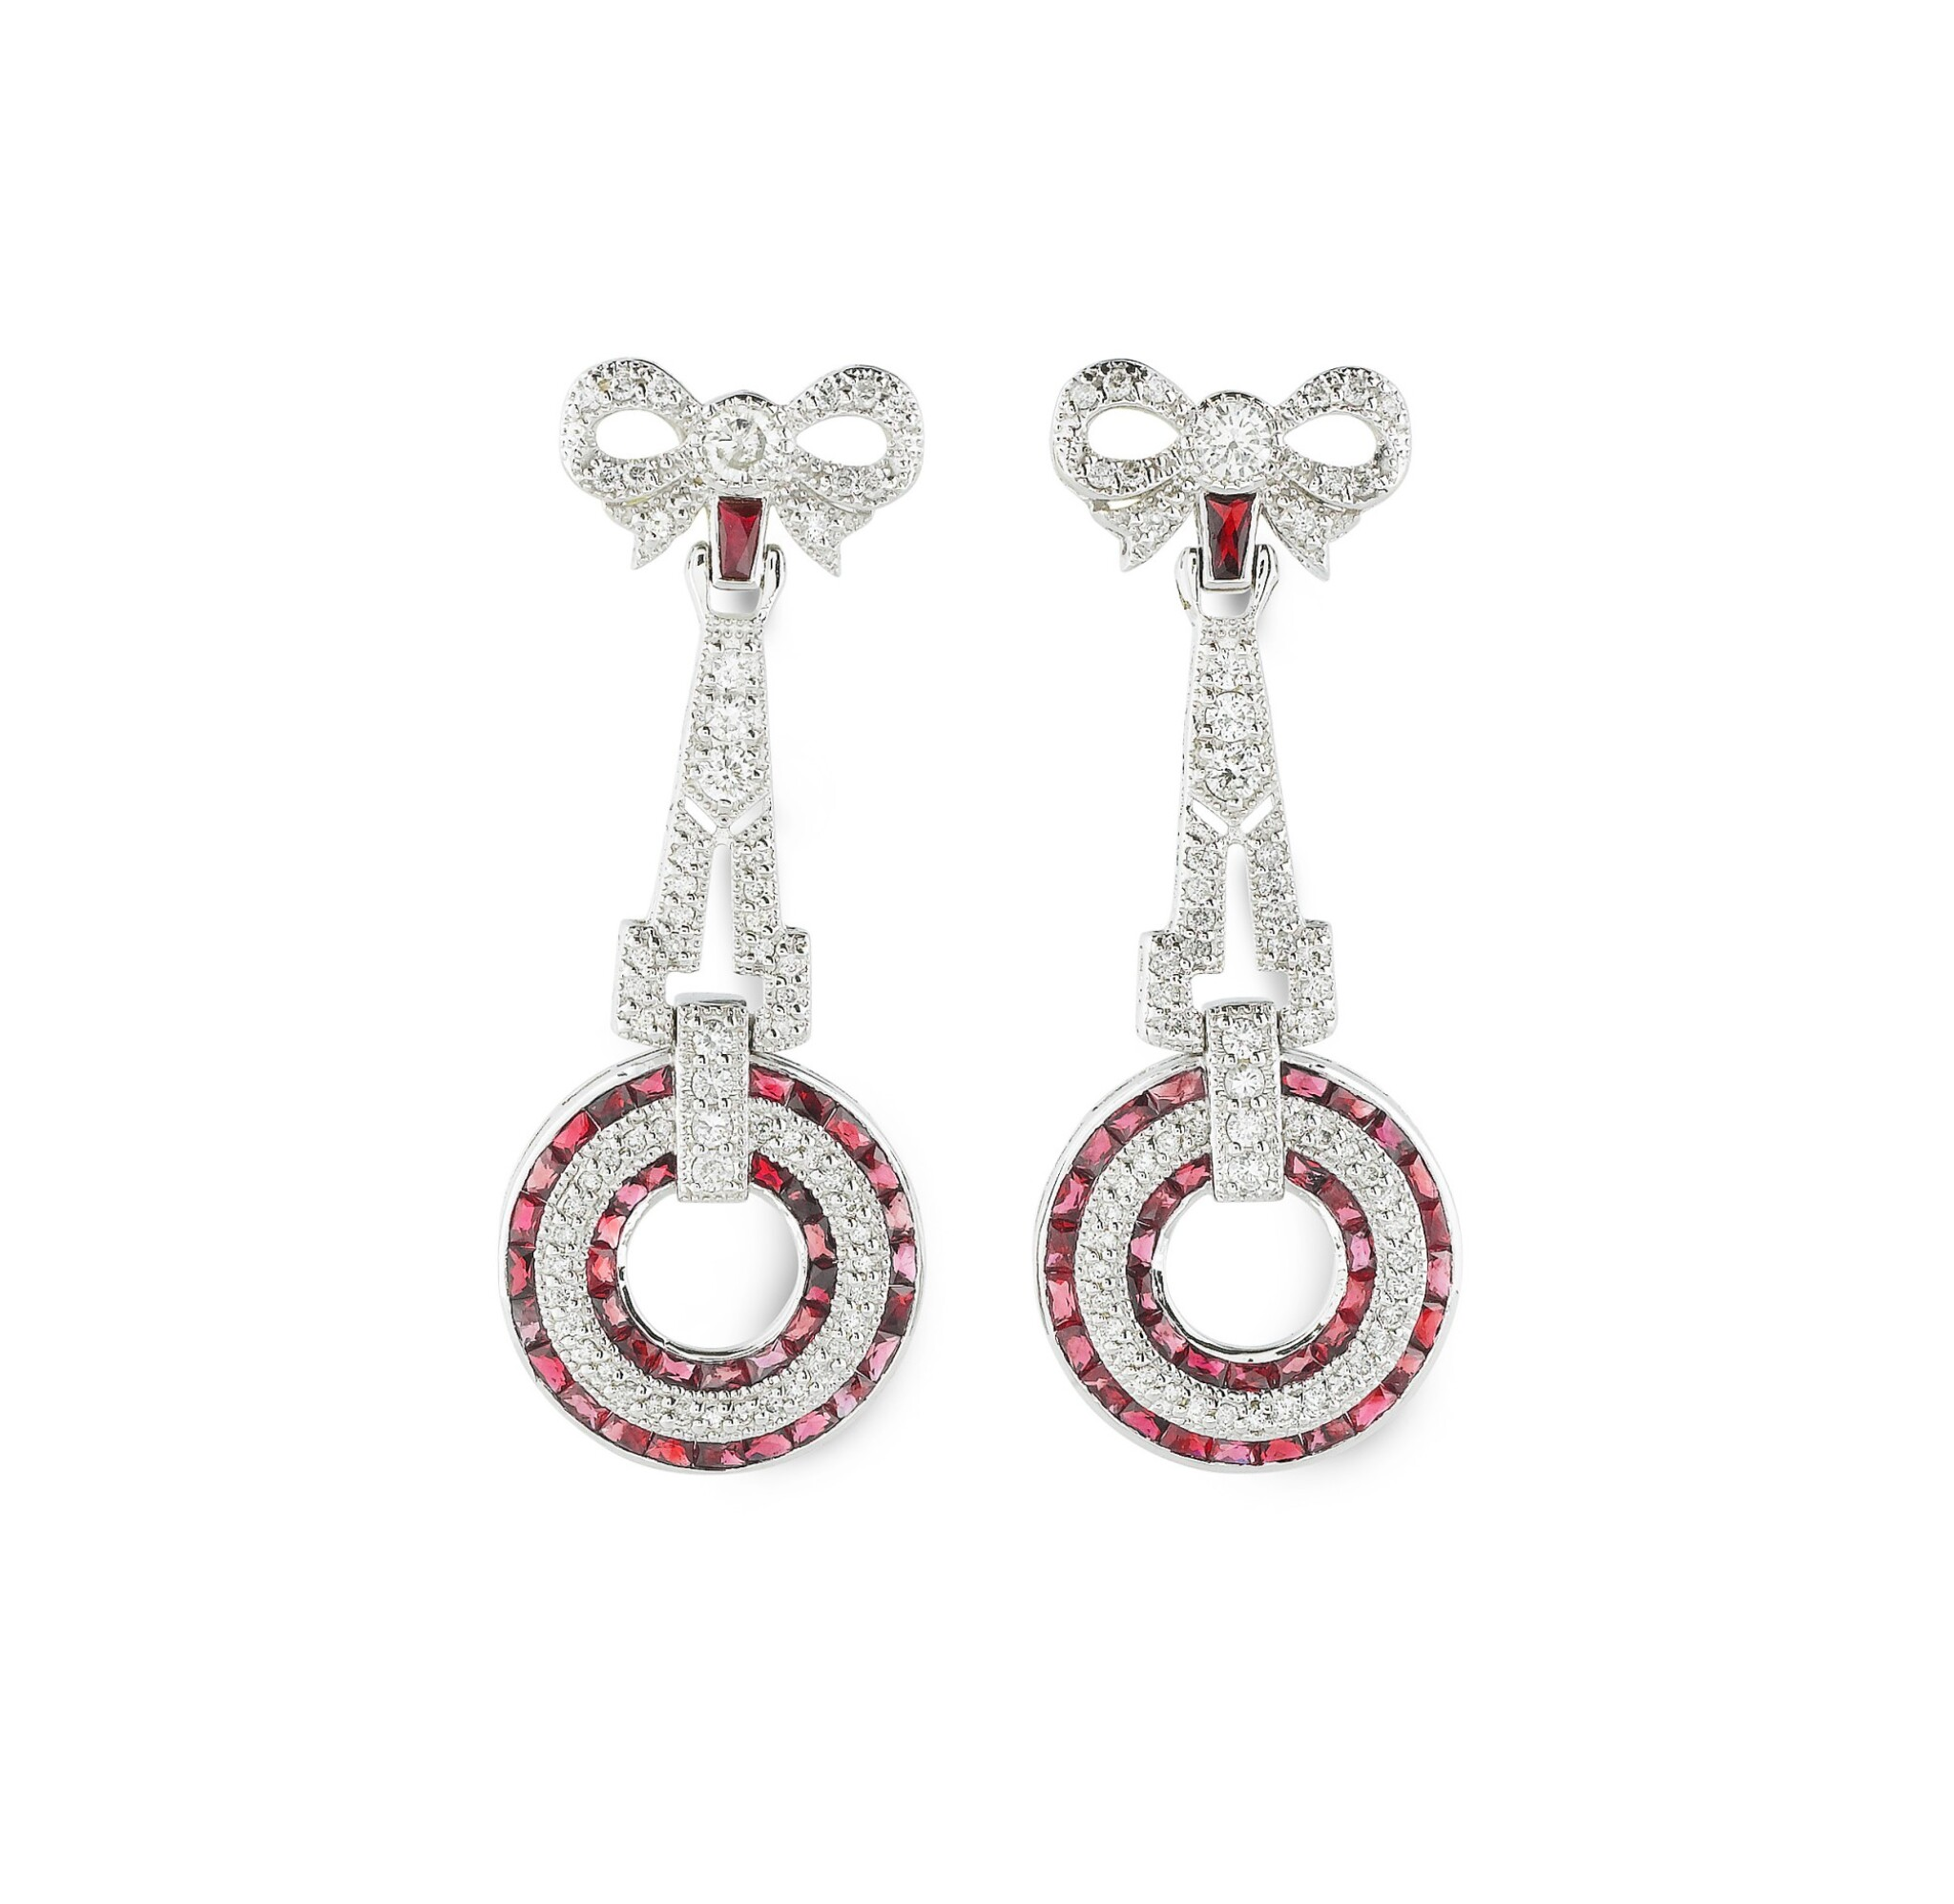 View full screen - View 1 of Lot 22. PAIRE DE BOUCLES D'OREILLE RUBIS ET DIAMANTS | PAIR OF RUBY AND DIAMOND EARRINGS .